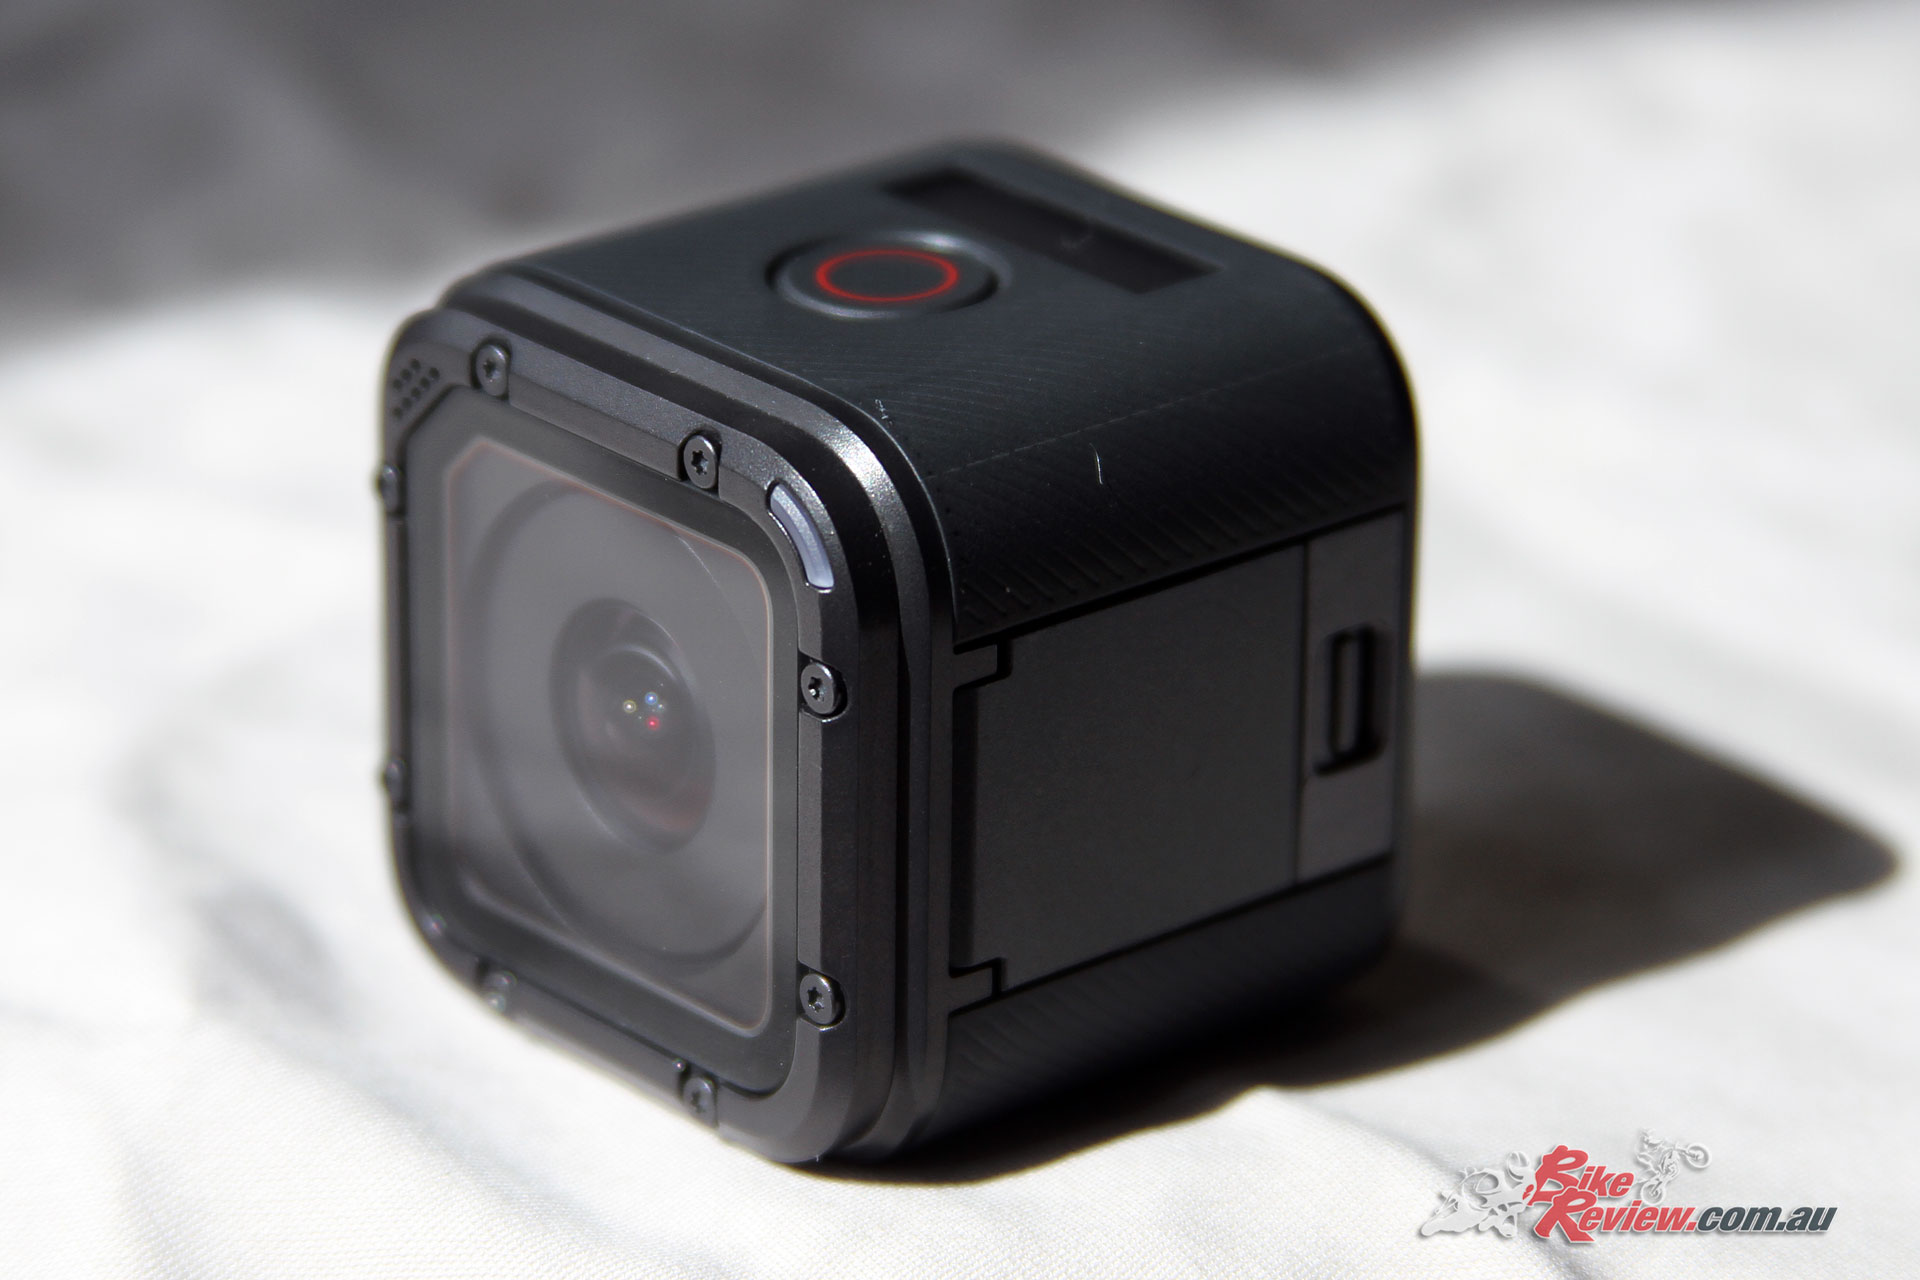 Overall we highly recommend the Hero5 Session, it's not just an action-cam, it's more of an all-rounder that becomes super-capable with the accessories available for different uses.